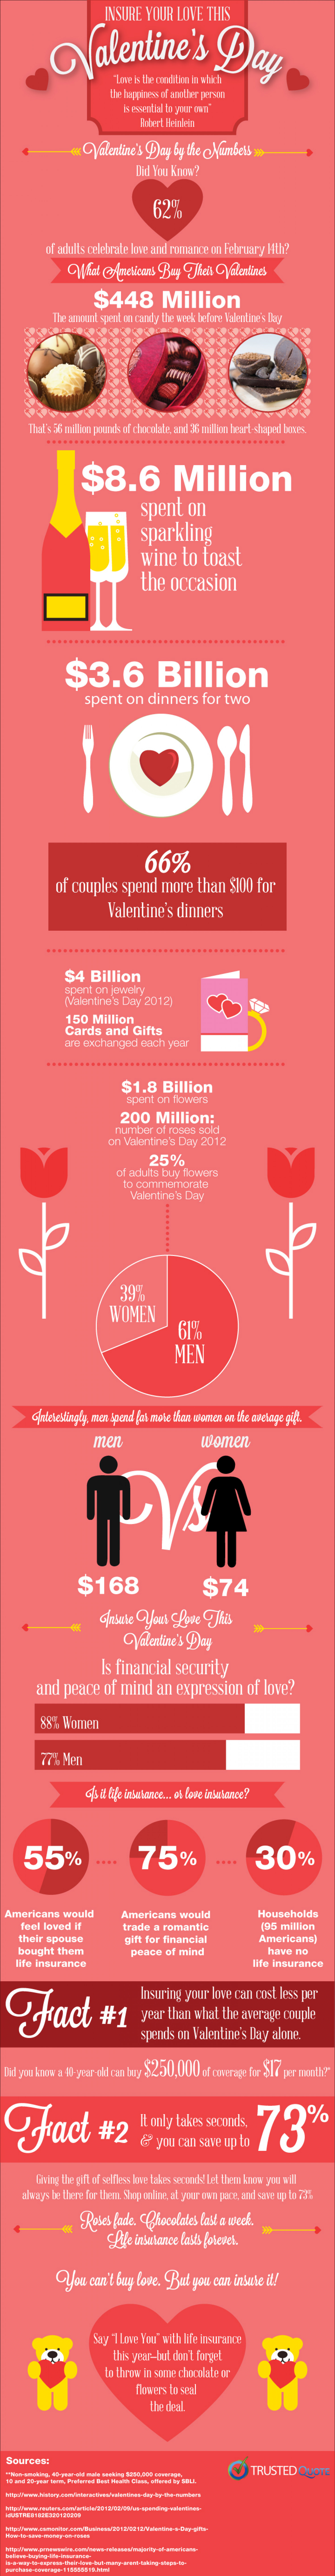 Insure Your Love this Valentine's Day Infographic